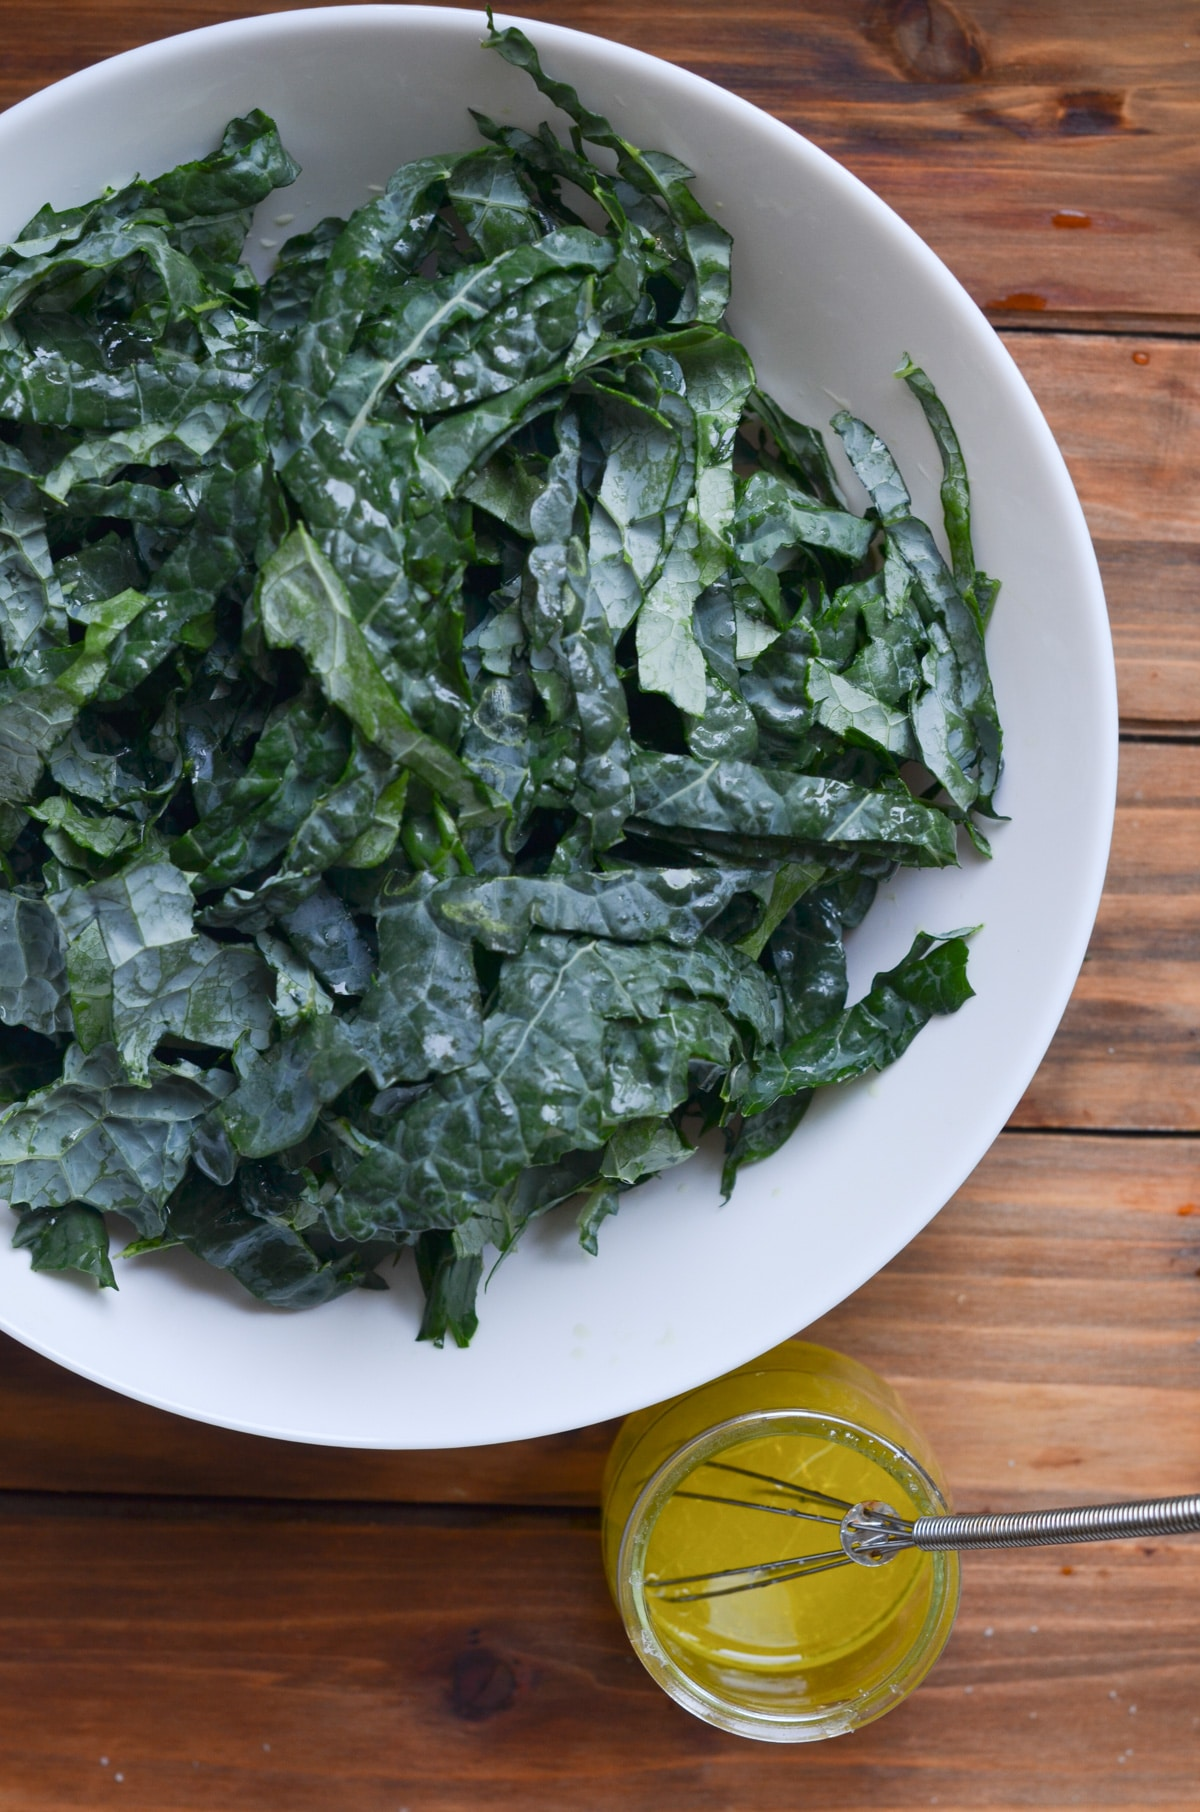 kale in white salad bowl with lemon dressing on the side.